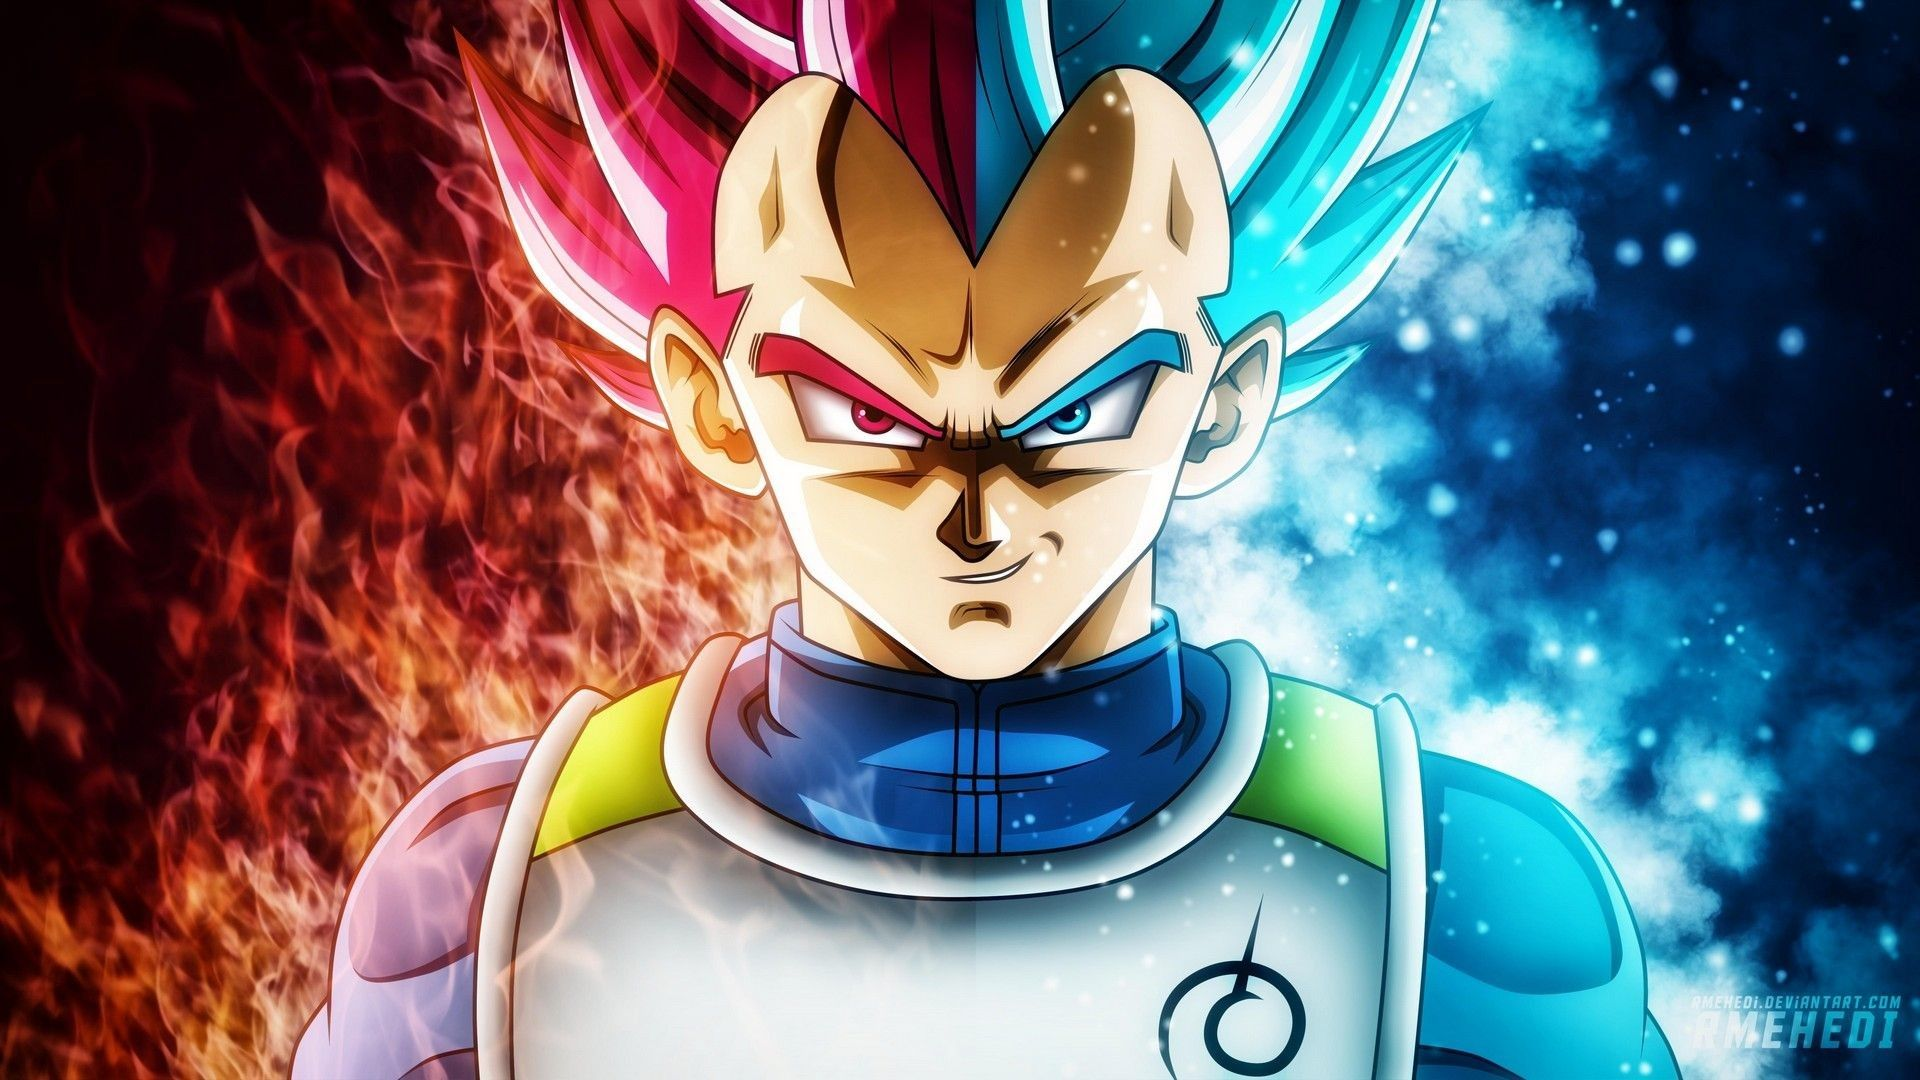 67+ Vegeta Wallpapers on WallpaperPlay Dragon ball super